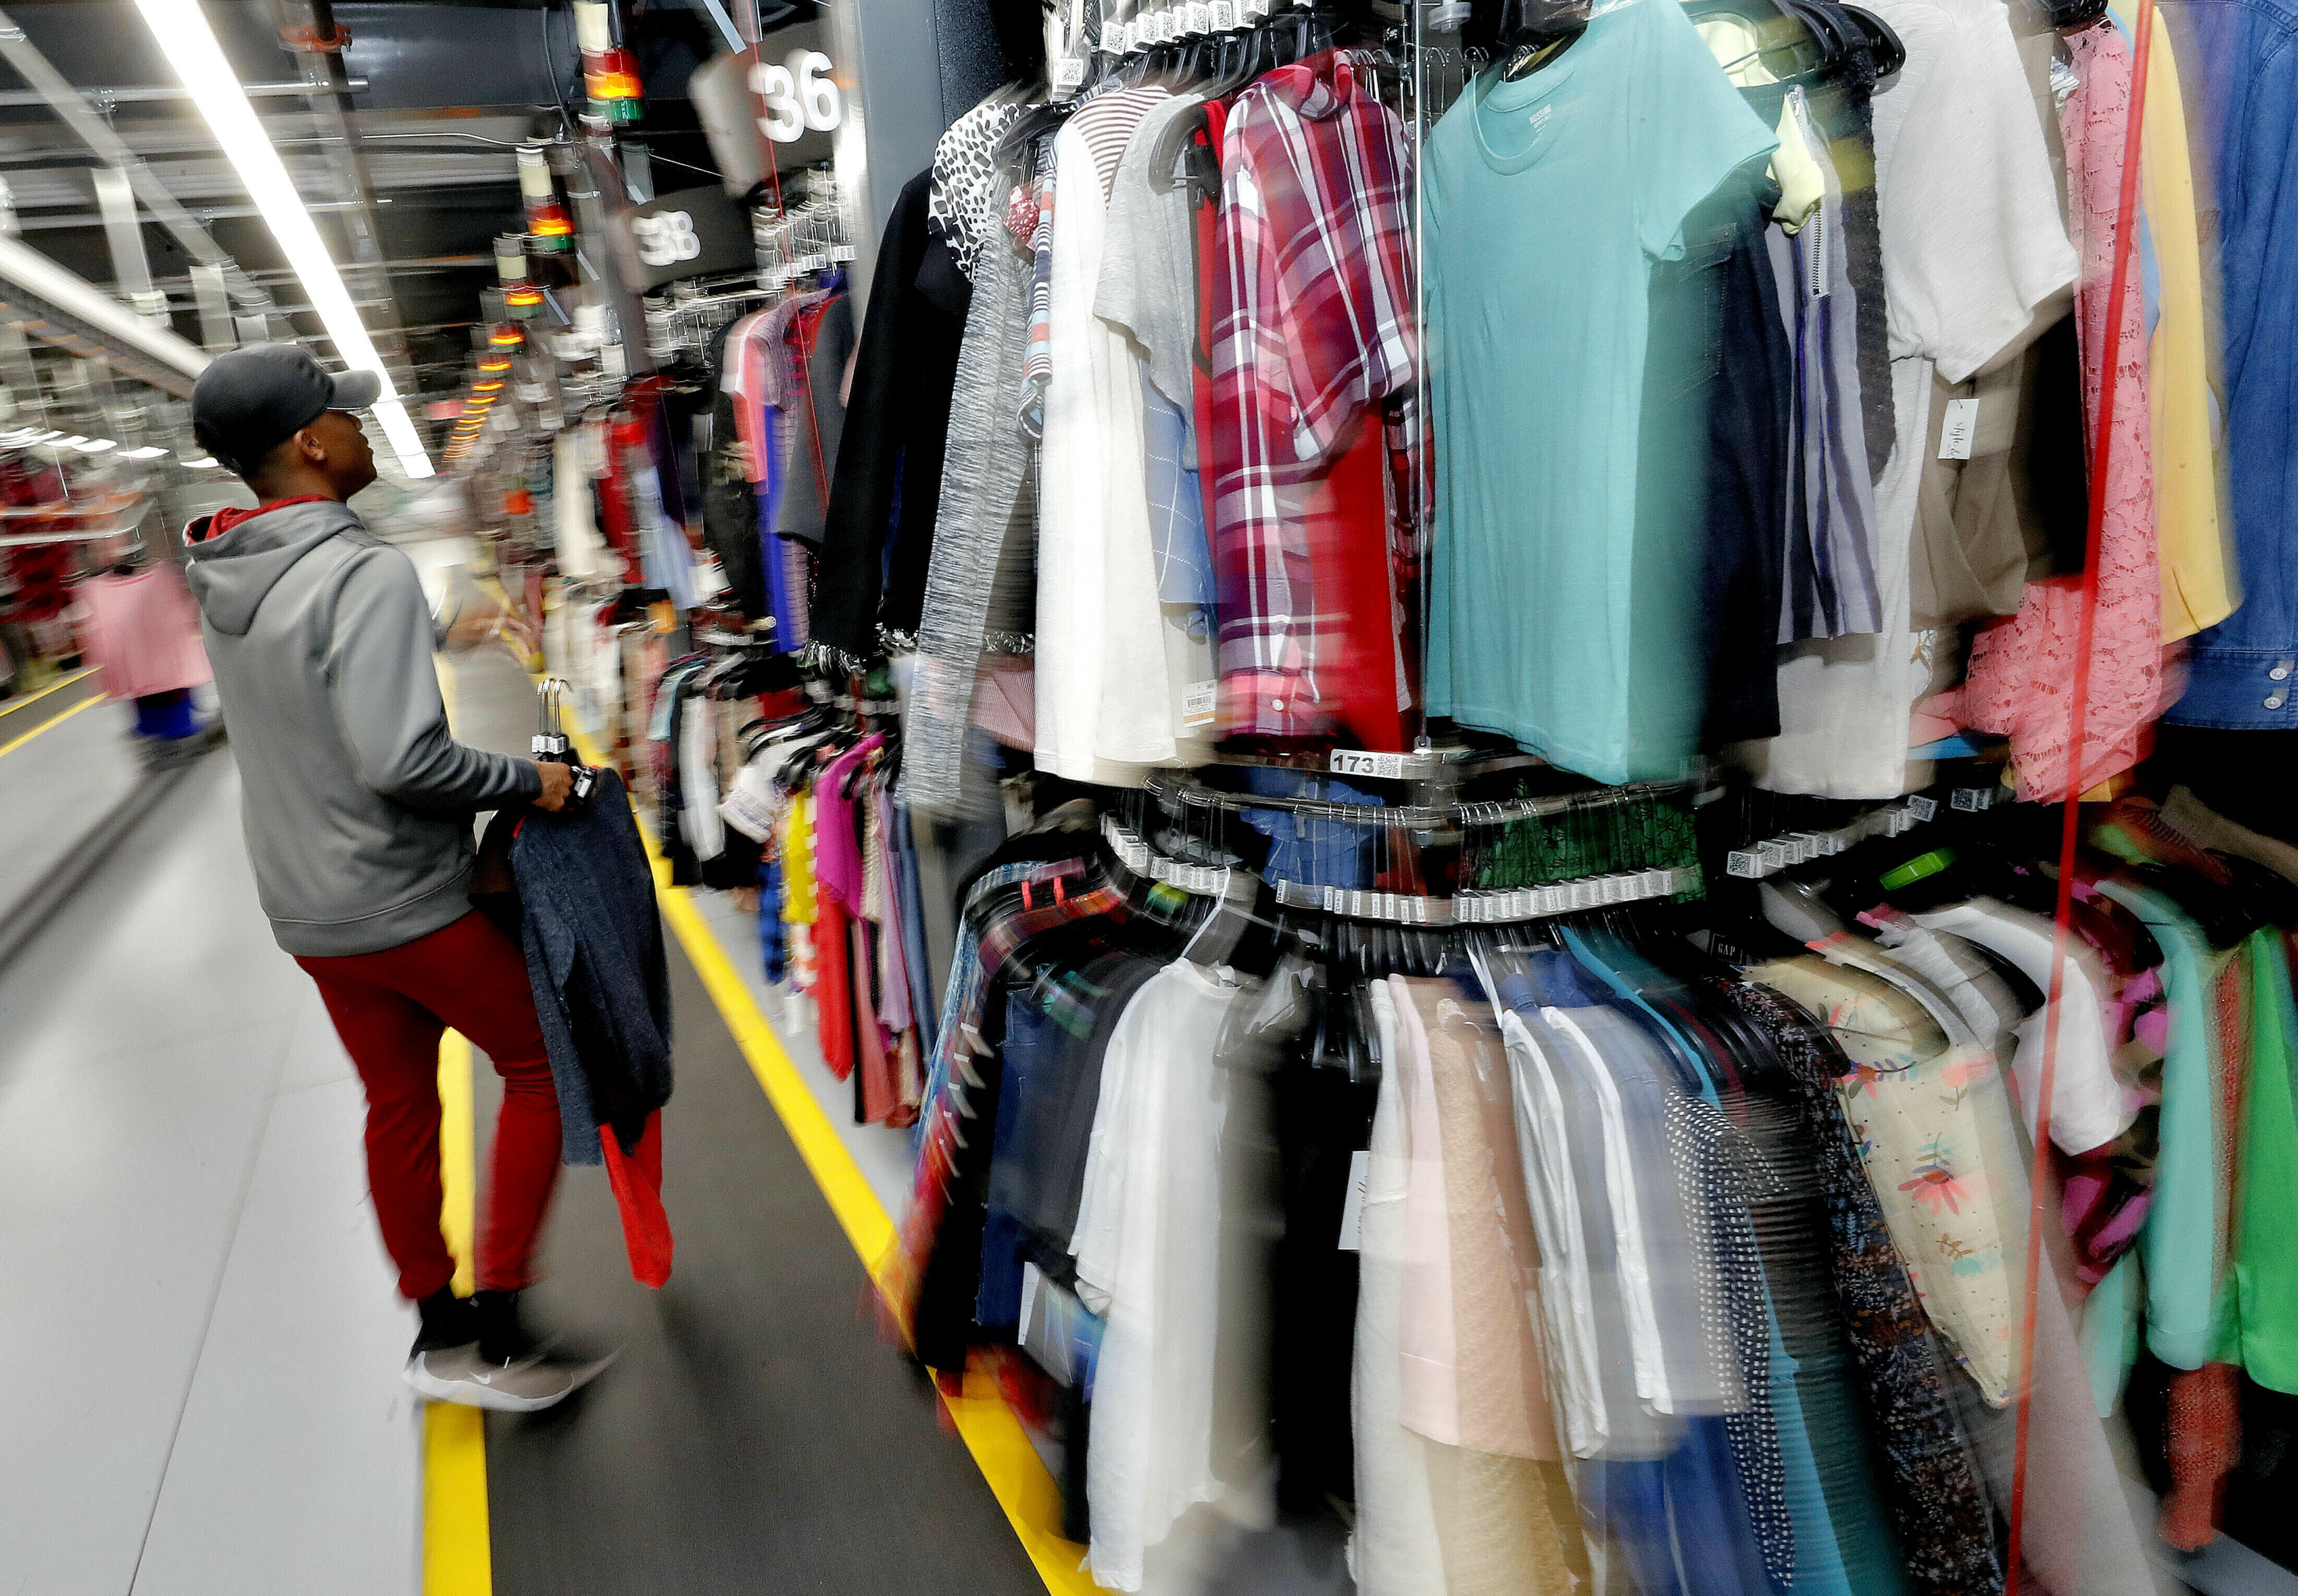 FILE - In this March 12, 2019, file photo Willie Walton hangs clothing on a three-tiered conveyor system at the ThredUp sorting facility in Phoenix. A slew of websites and apps act as virtual thrift stores for vintage devotees, deal hunters and those just looking to unload stuff they don't want anymore. (AP Photo/Matt York, File)